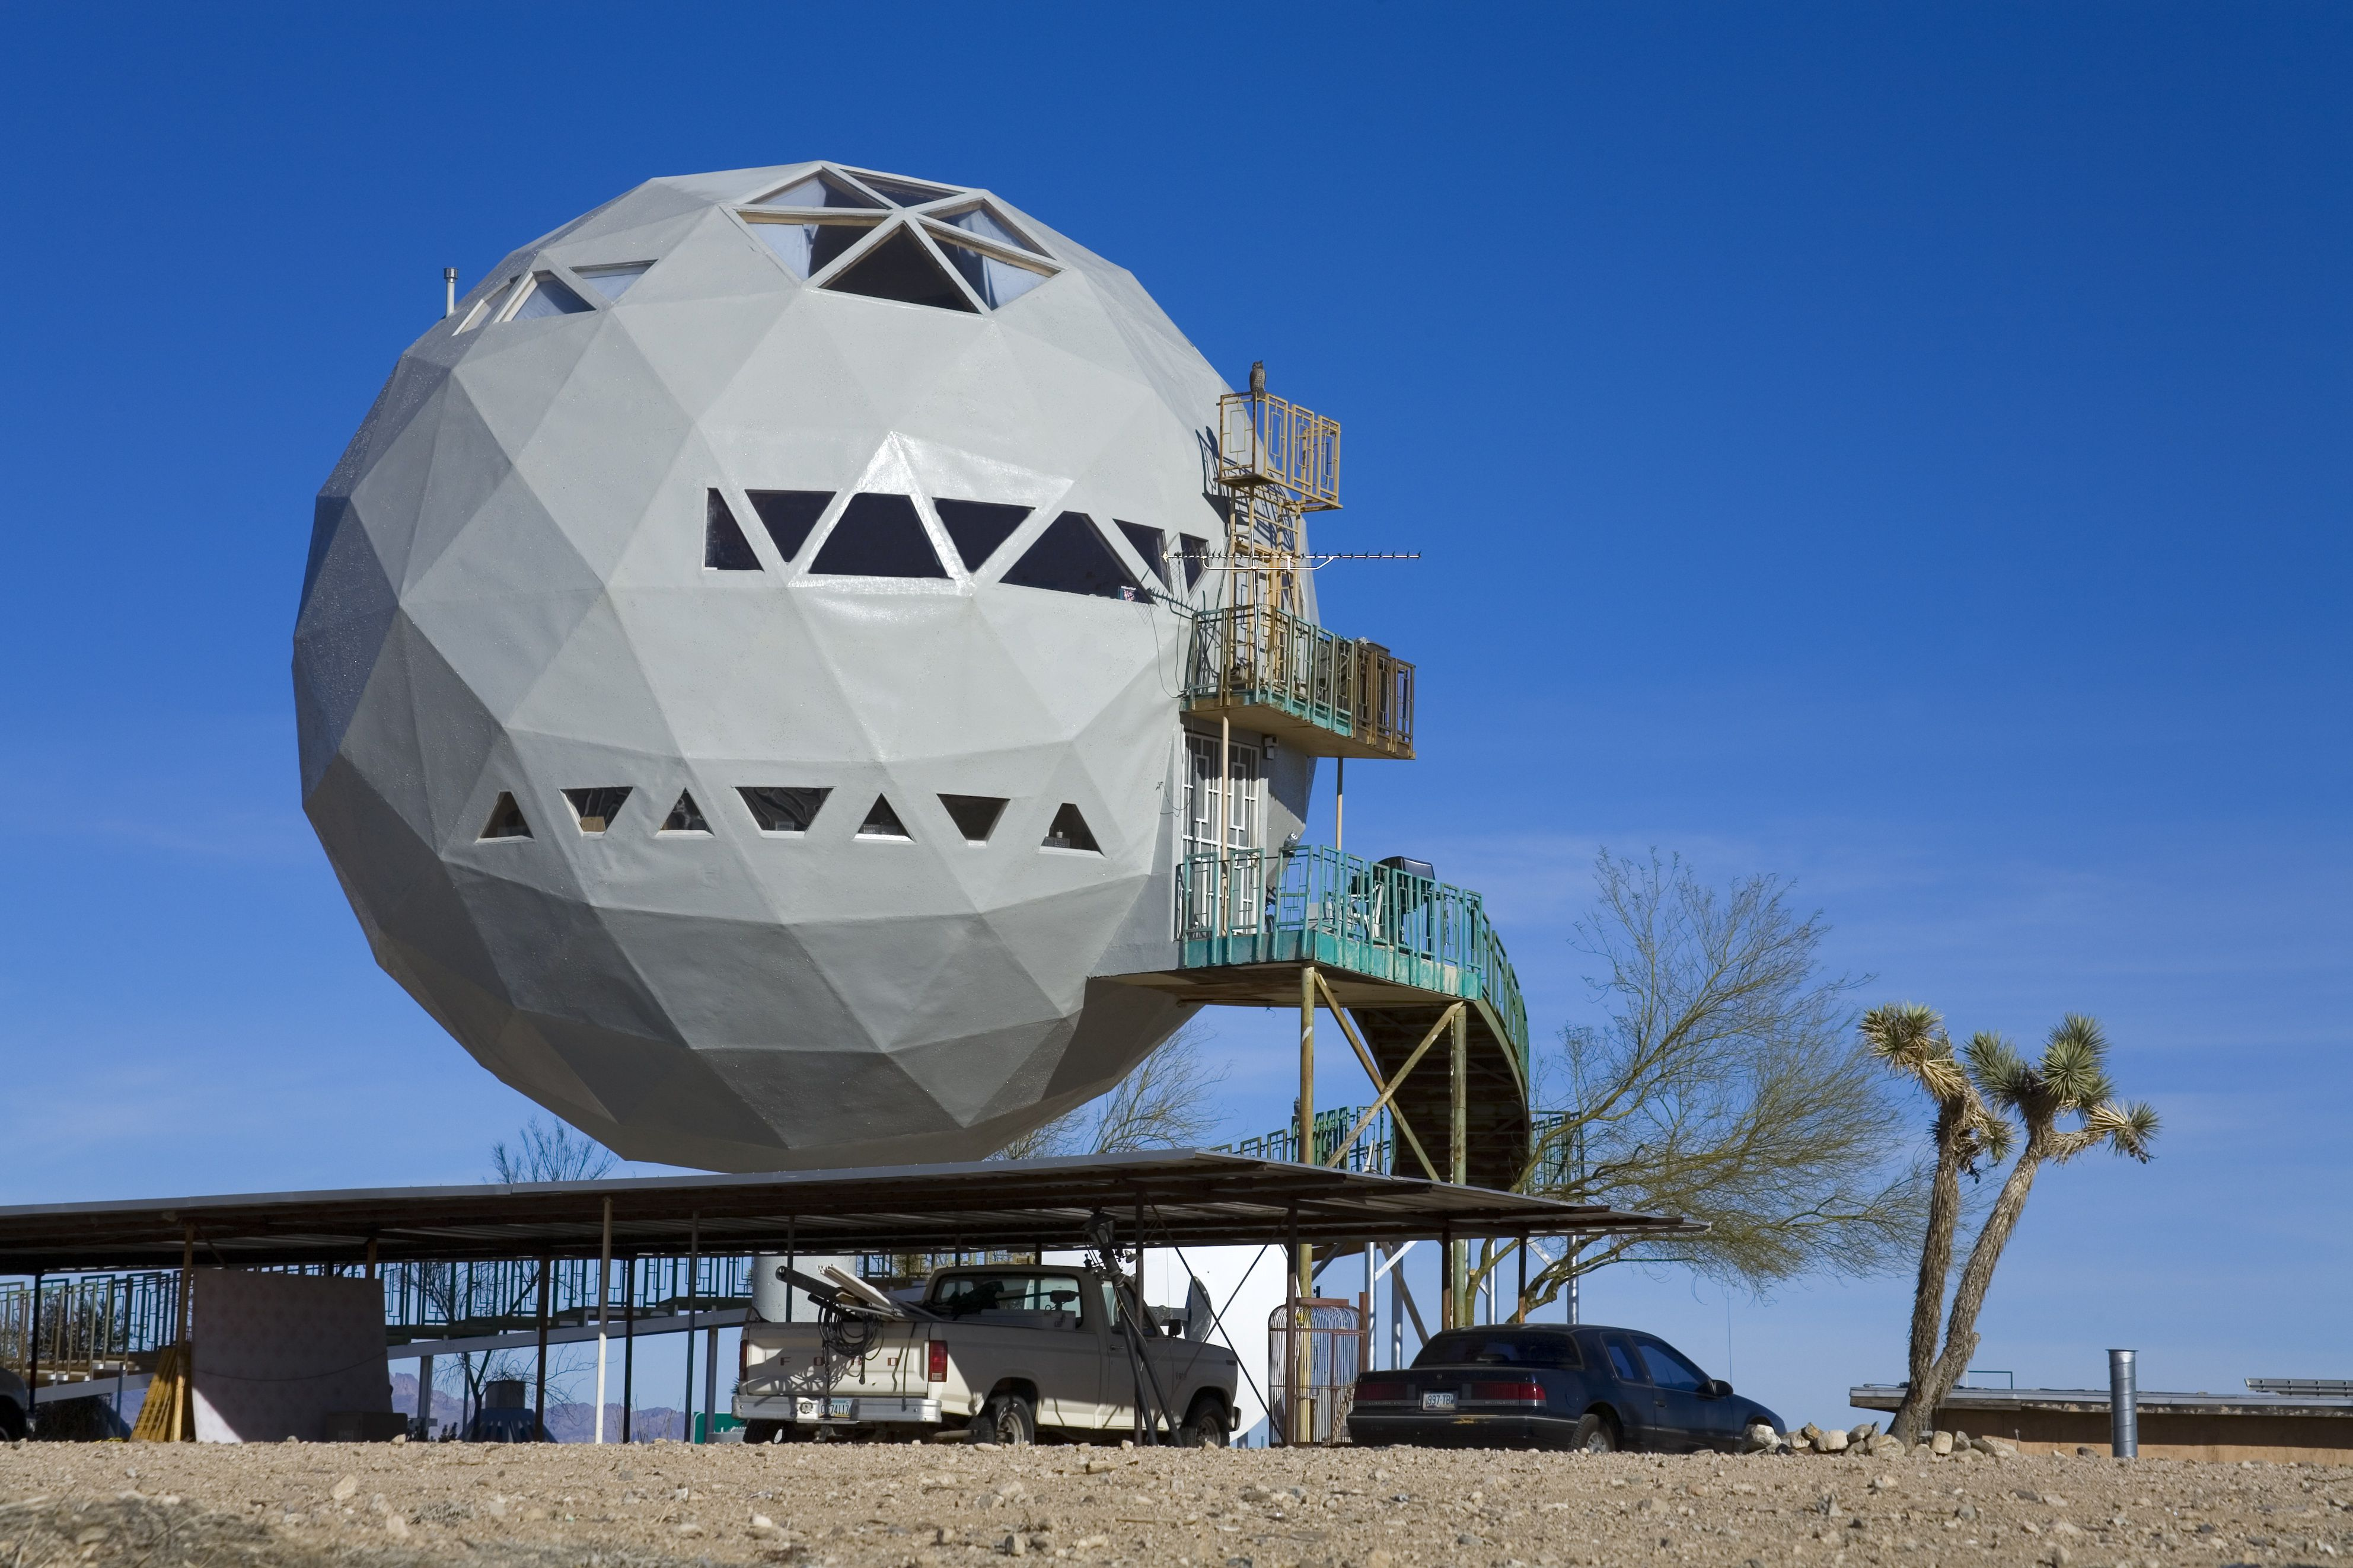 sphere on a platform with a car underneath and steps leading up to entrance points